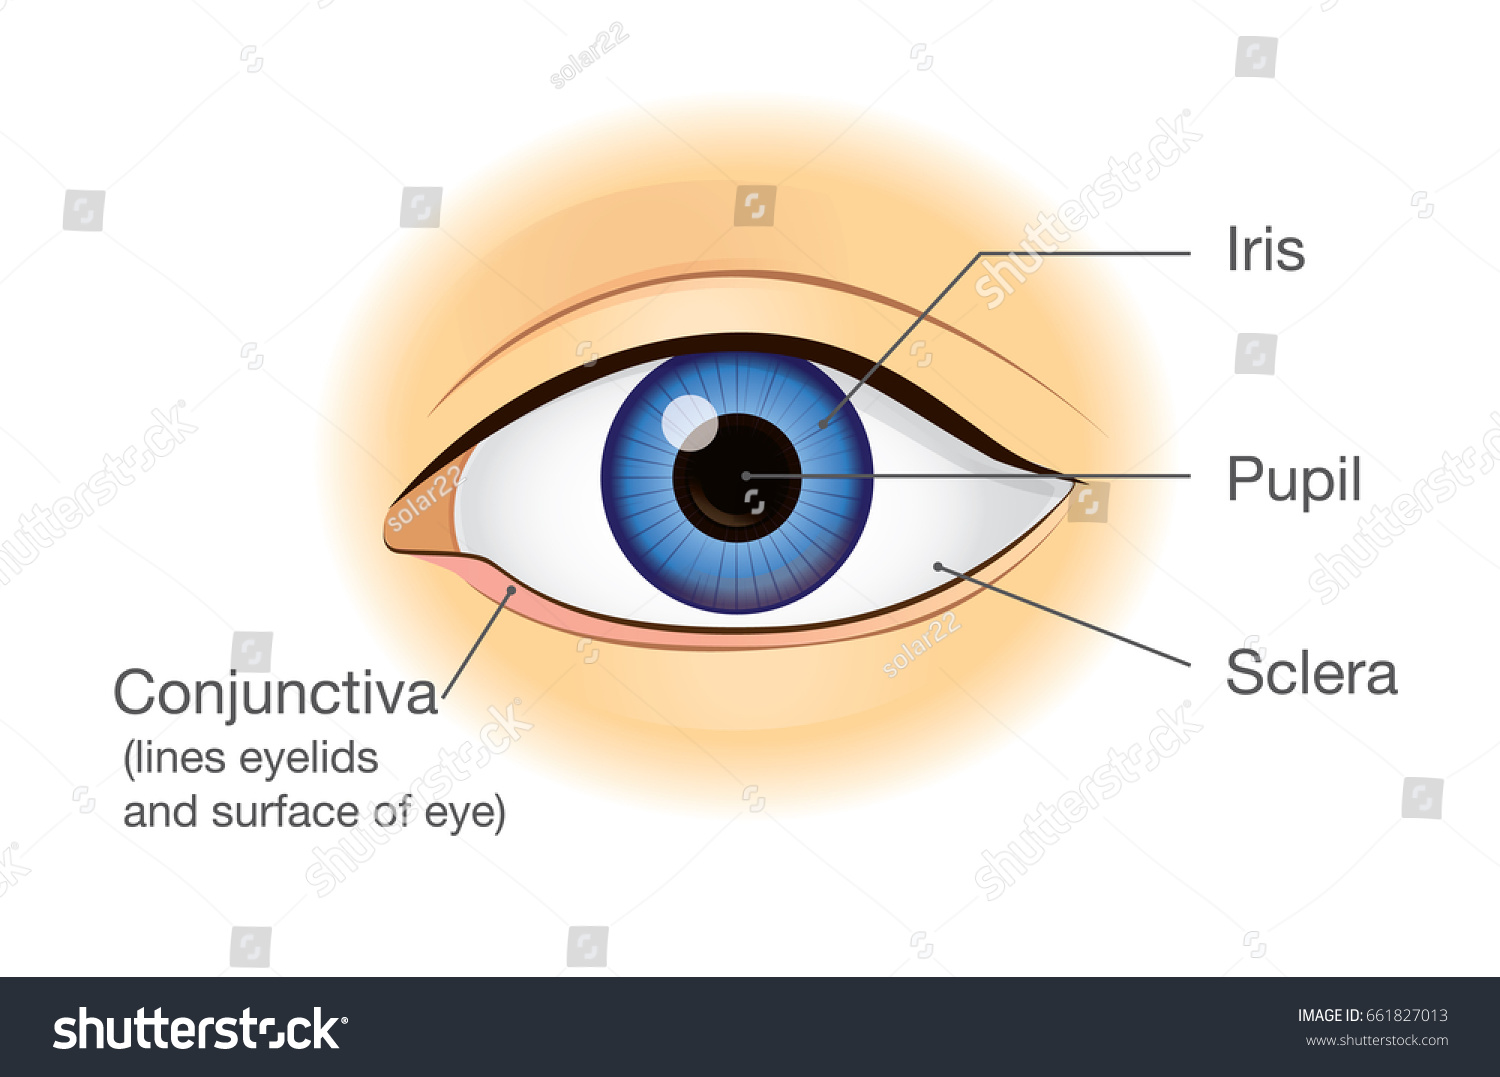 Human Eye Anatomy Front View Illustration Stock Vector 661827013 ...